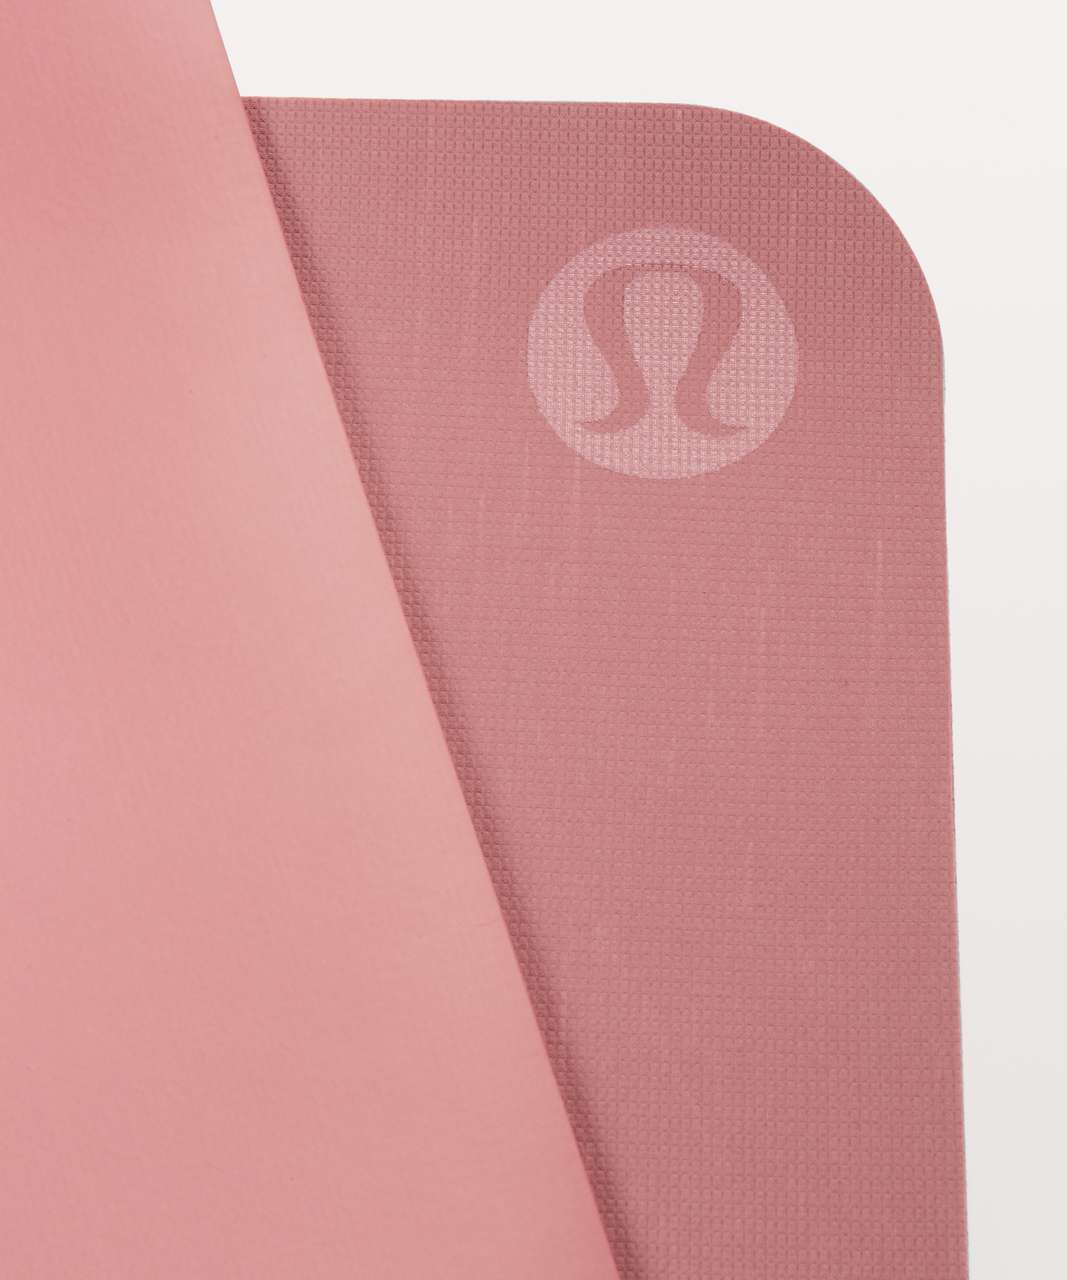 Lululemon The Reversible Mat 5mm - Quicksand / Light Quicksand